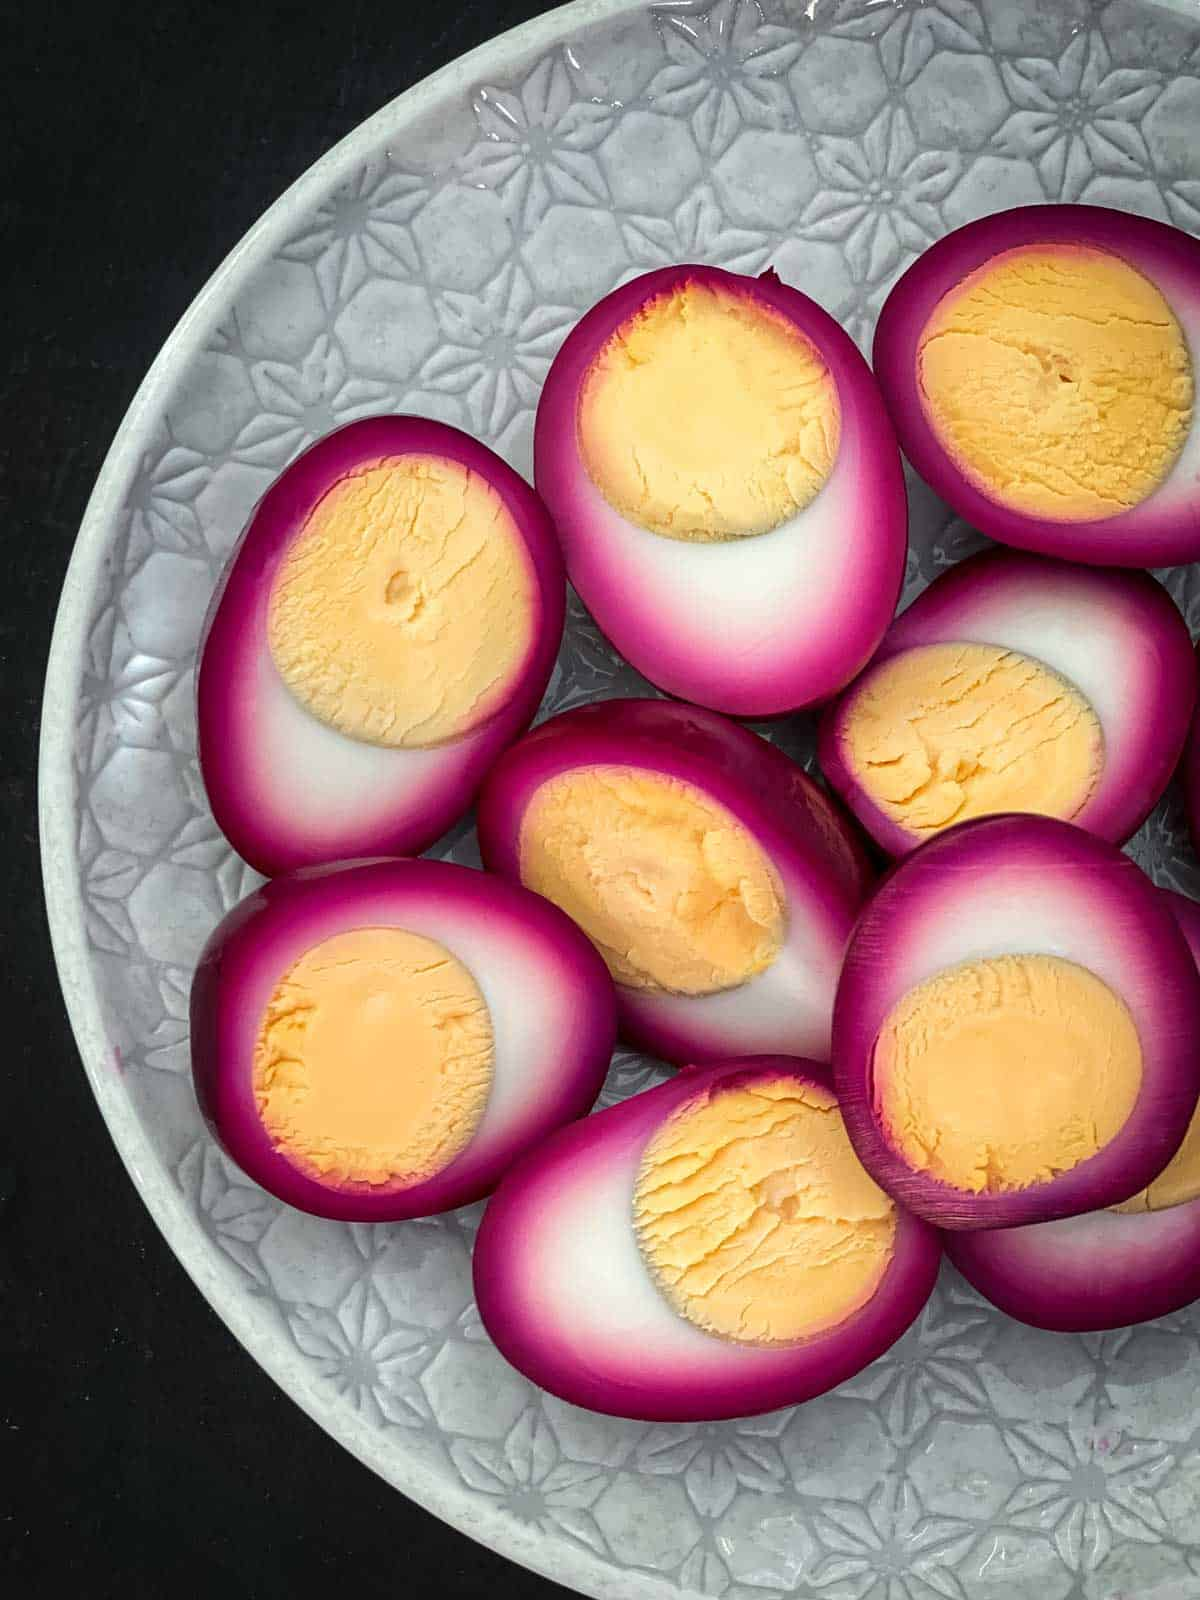 Pickled red beet eggs.